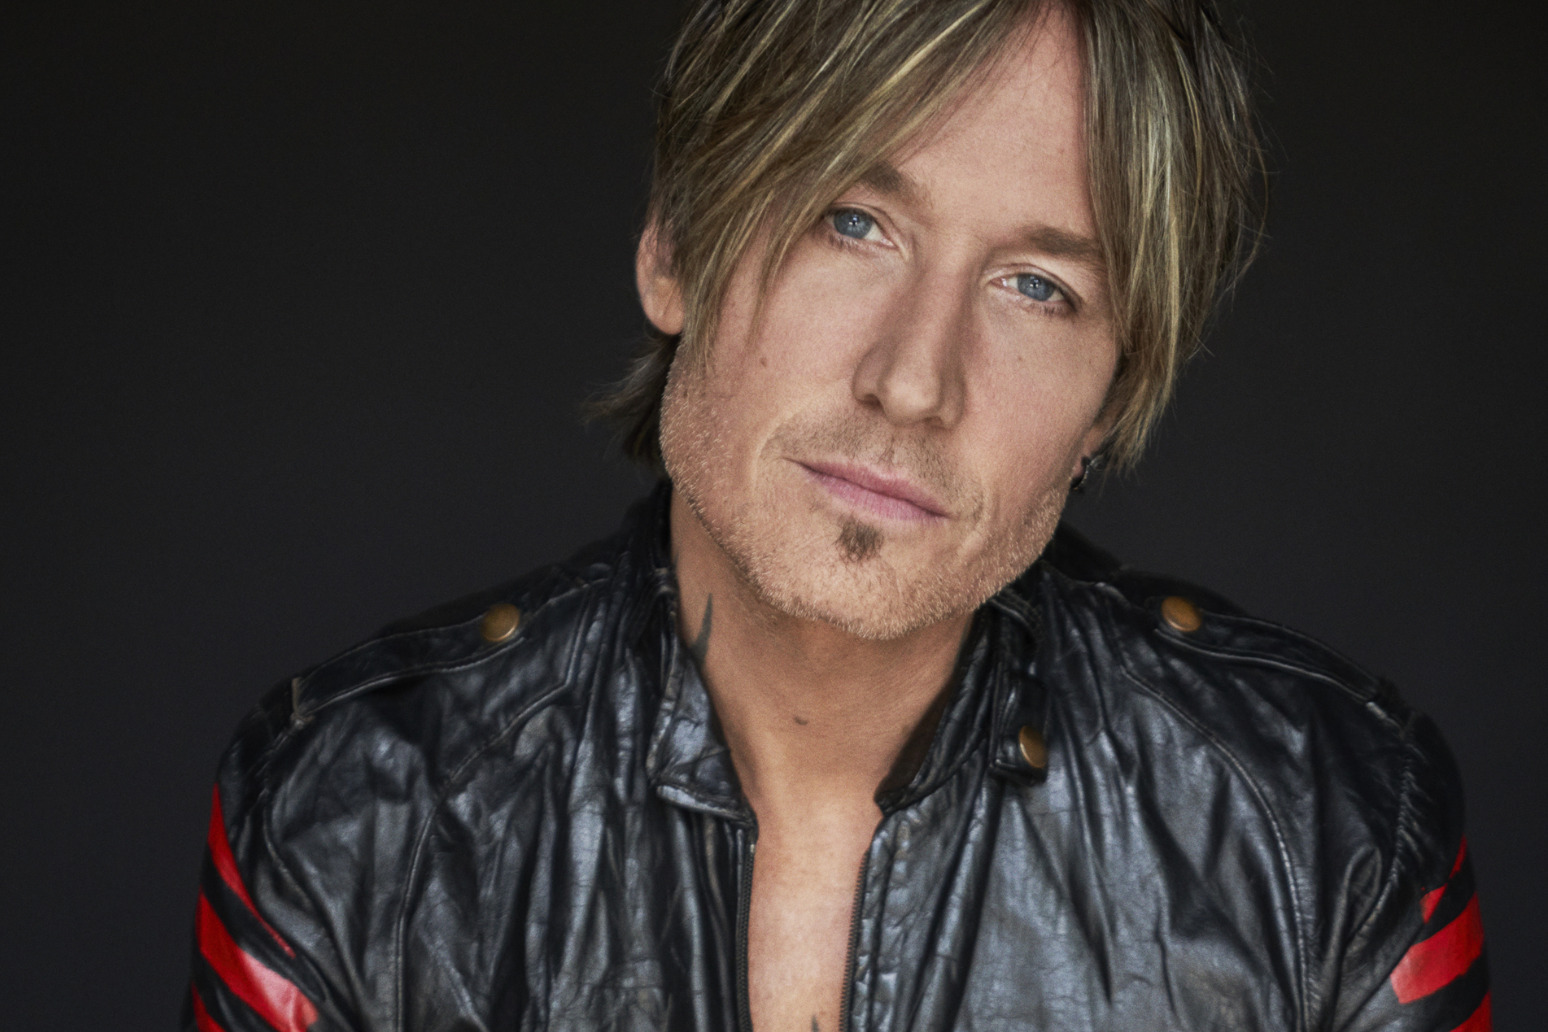 Keith Urban says he\'s found a balance between his touring commitments and home life